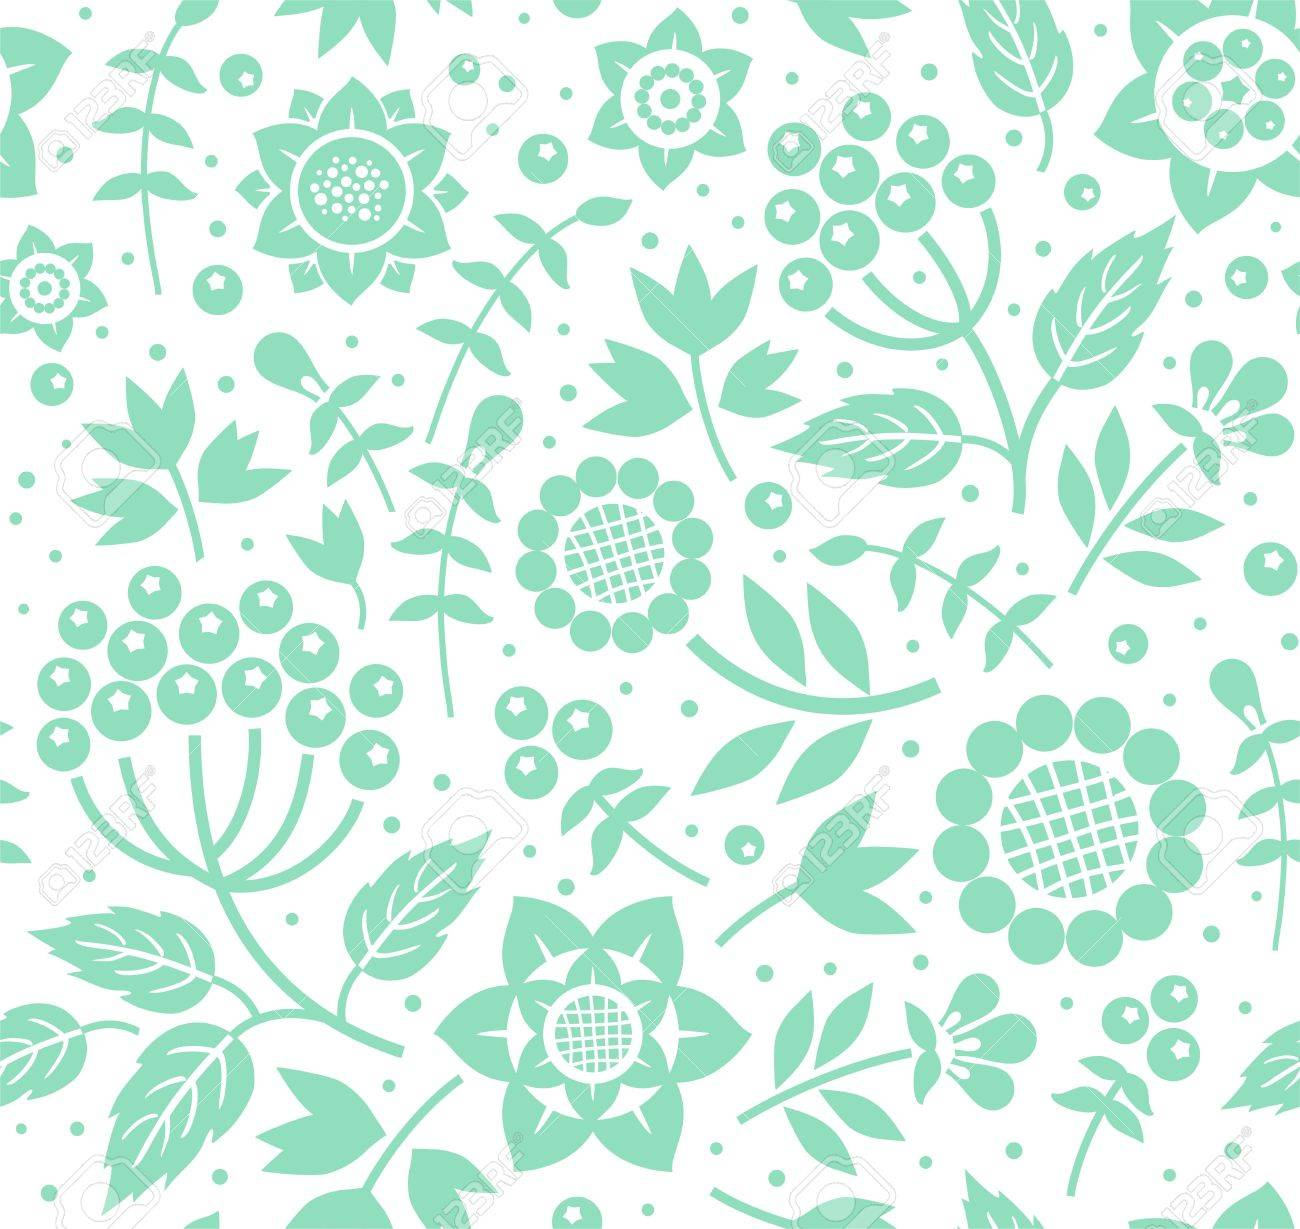 Berries And Twigs Decorative Background Seamless Mint White